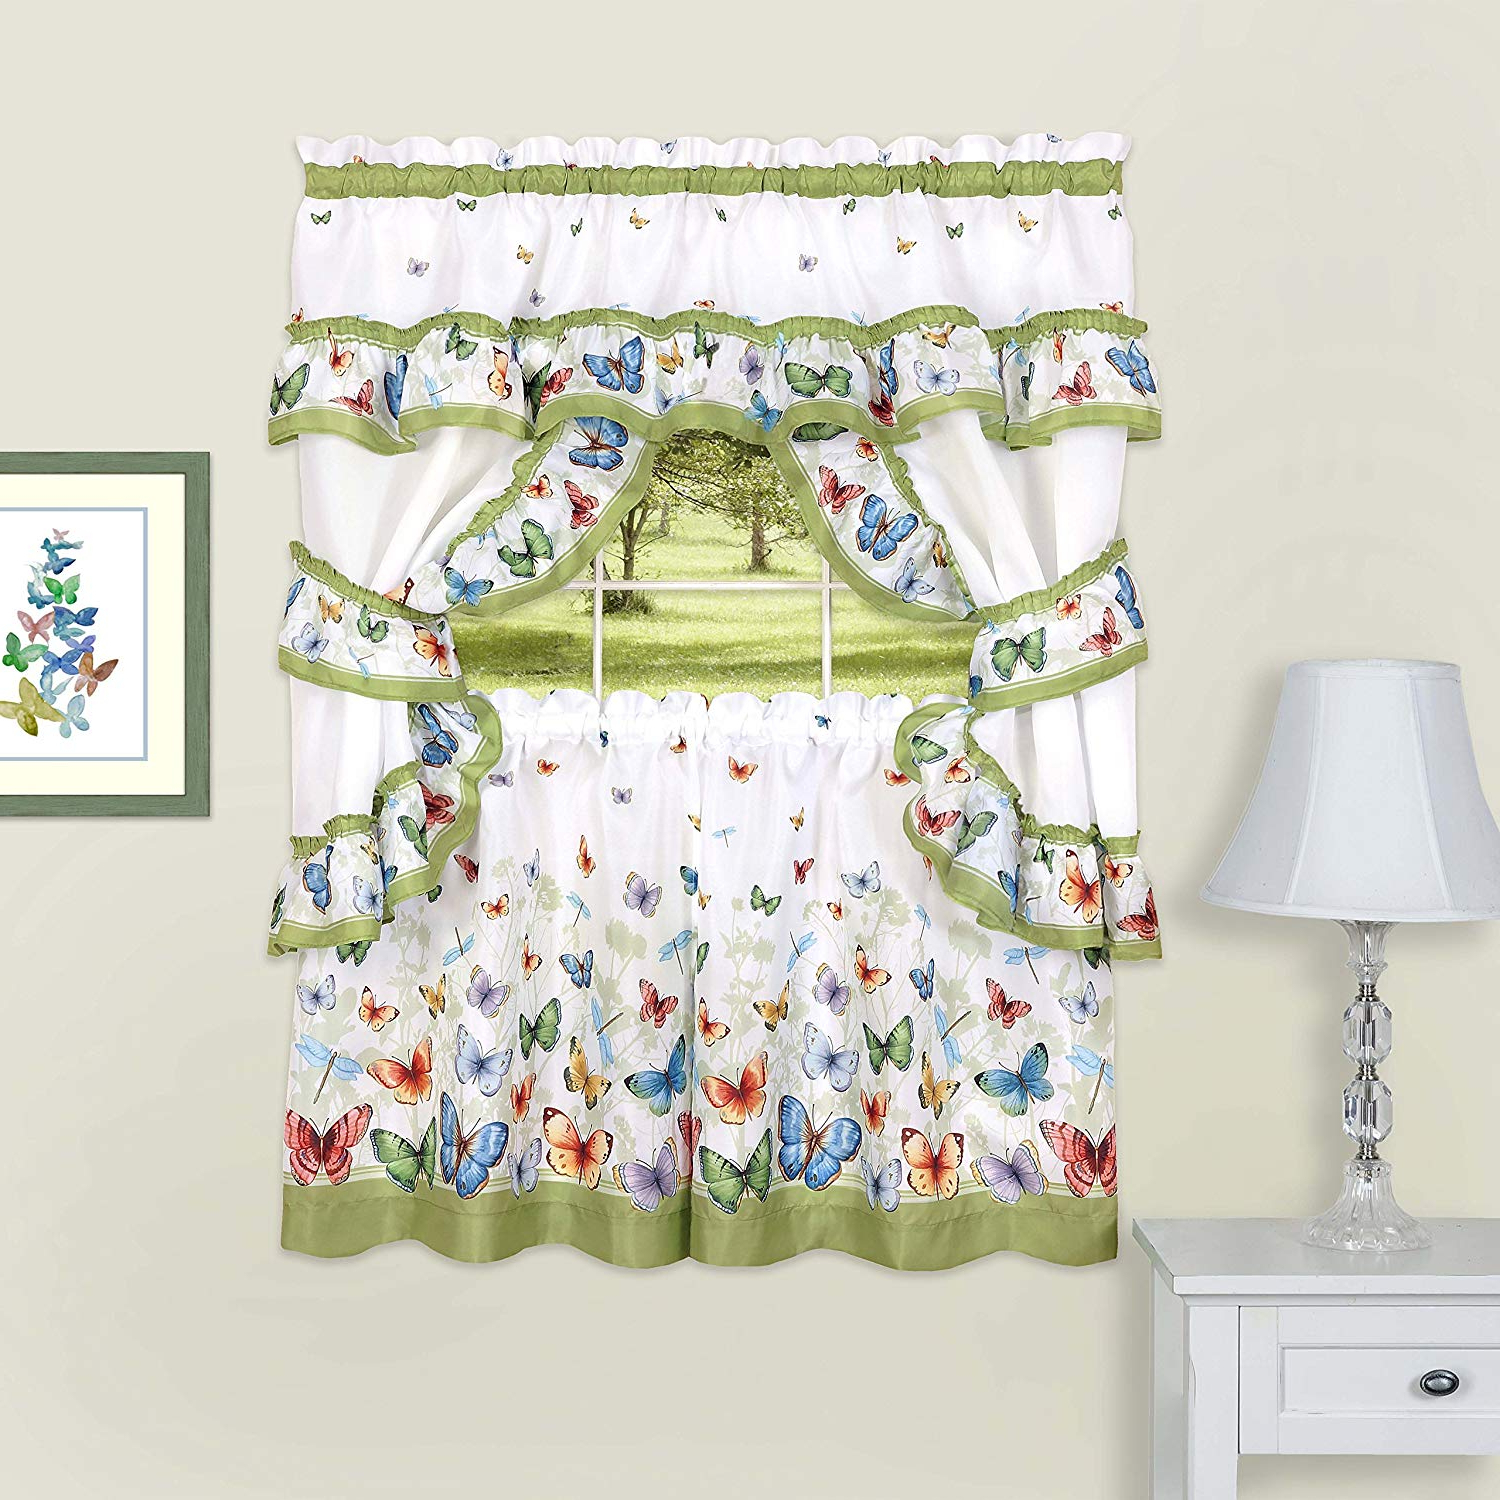 """Cottage Ivy Curtain Tiers With Popular Achim Home Furnishings Butterflies Printed Cottage Window Curtain Set, 57"""" X 24"""", Green (View 3 of 20)"""